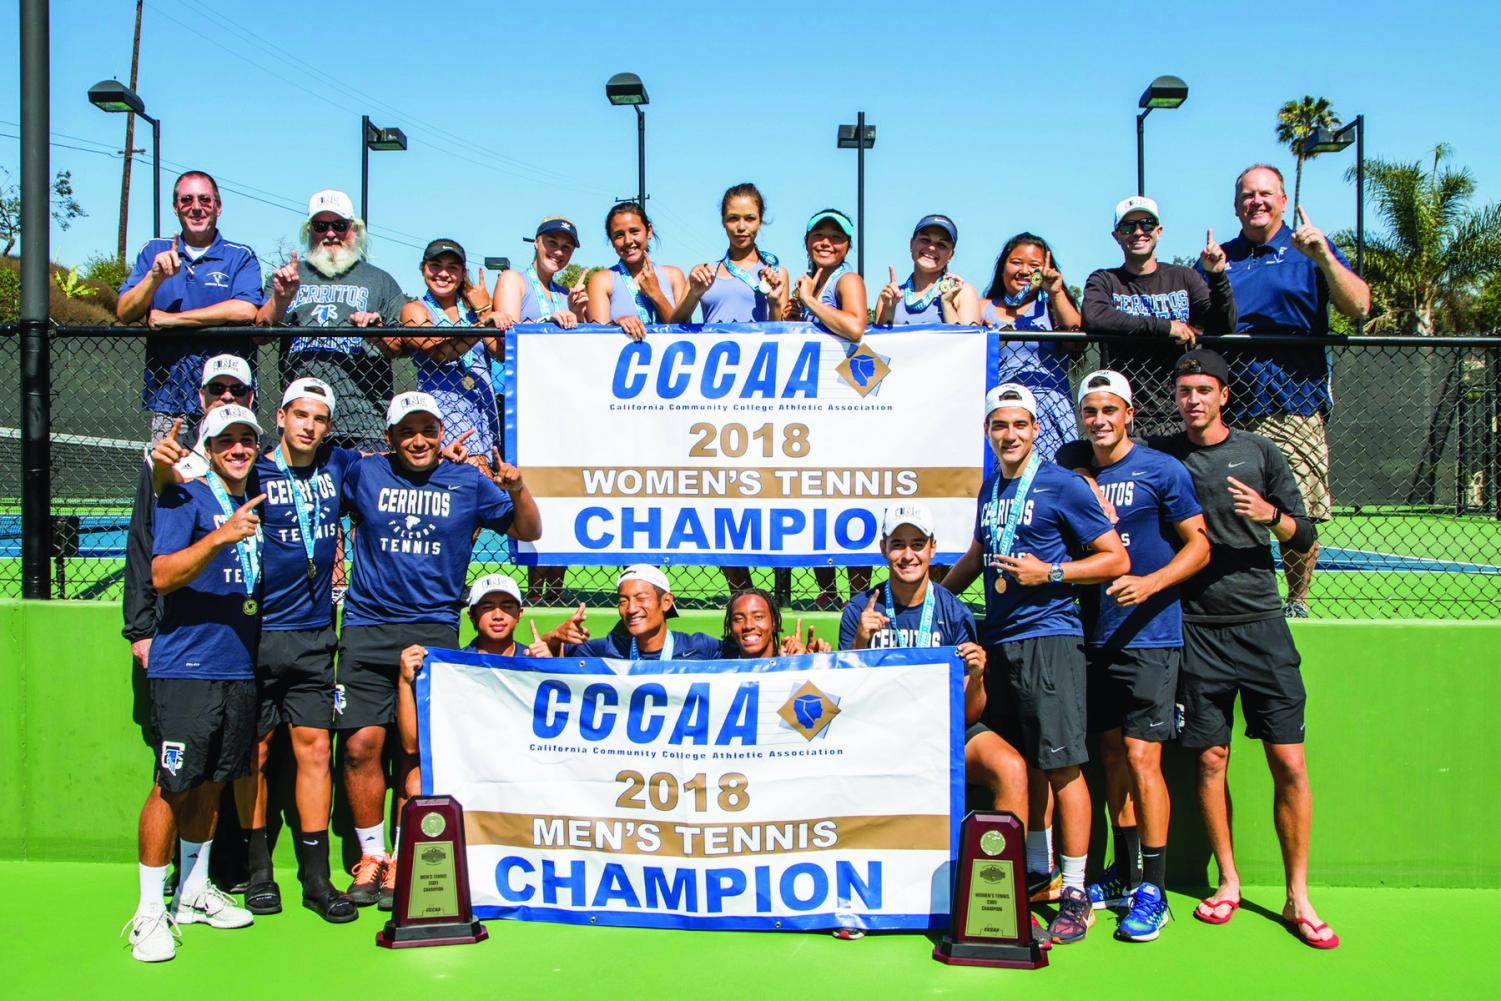 Falcons' men's and women's tennis teams make history winning state championships